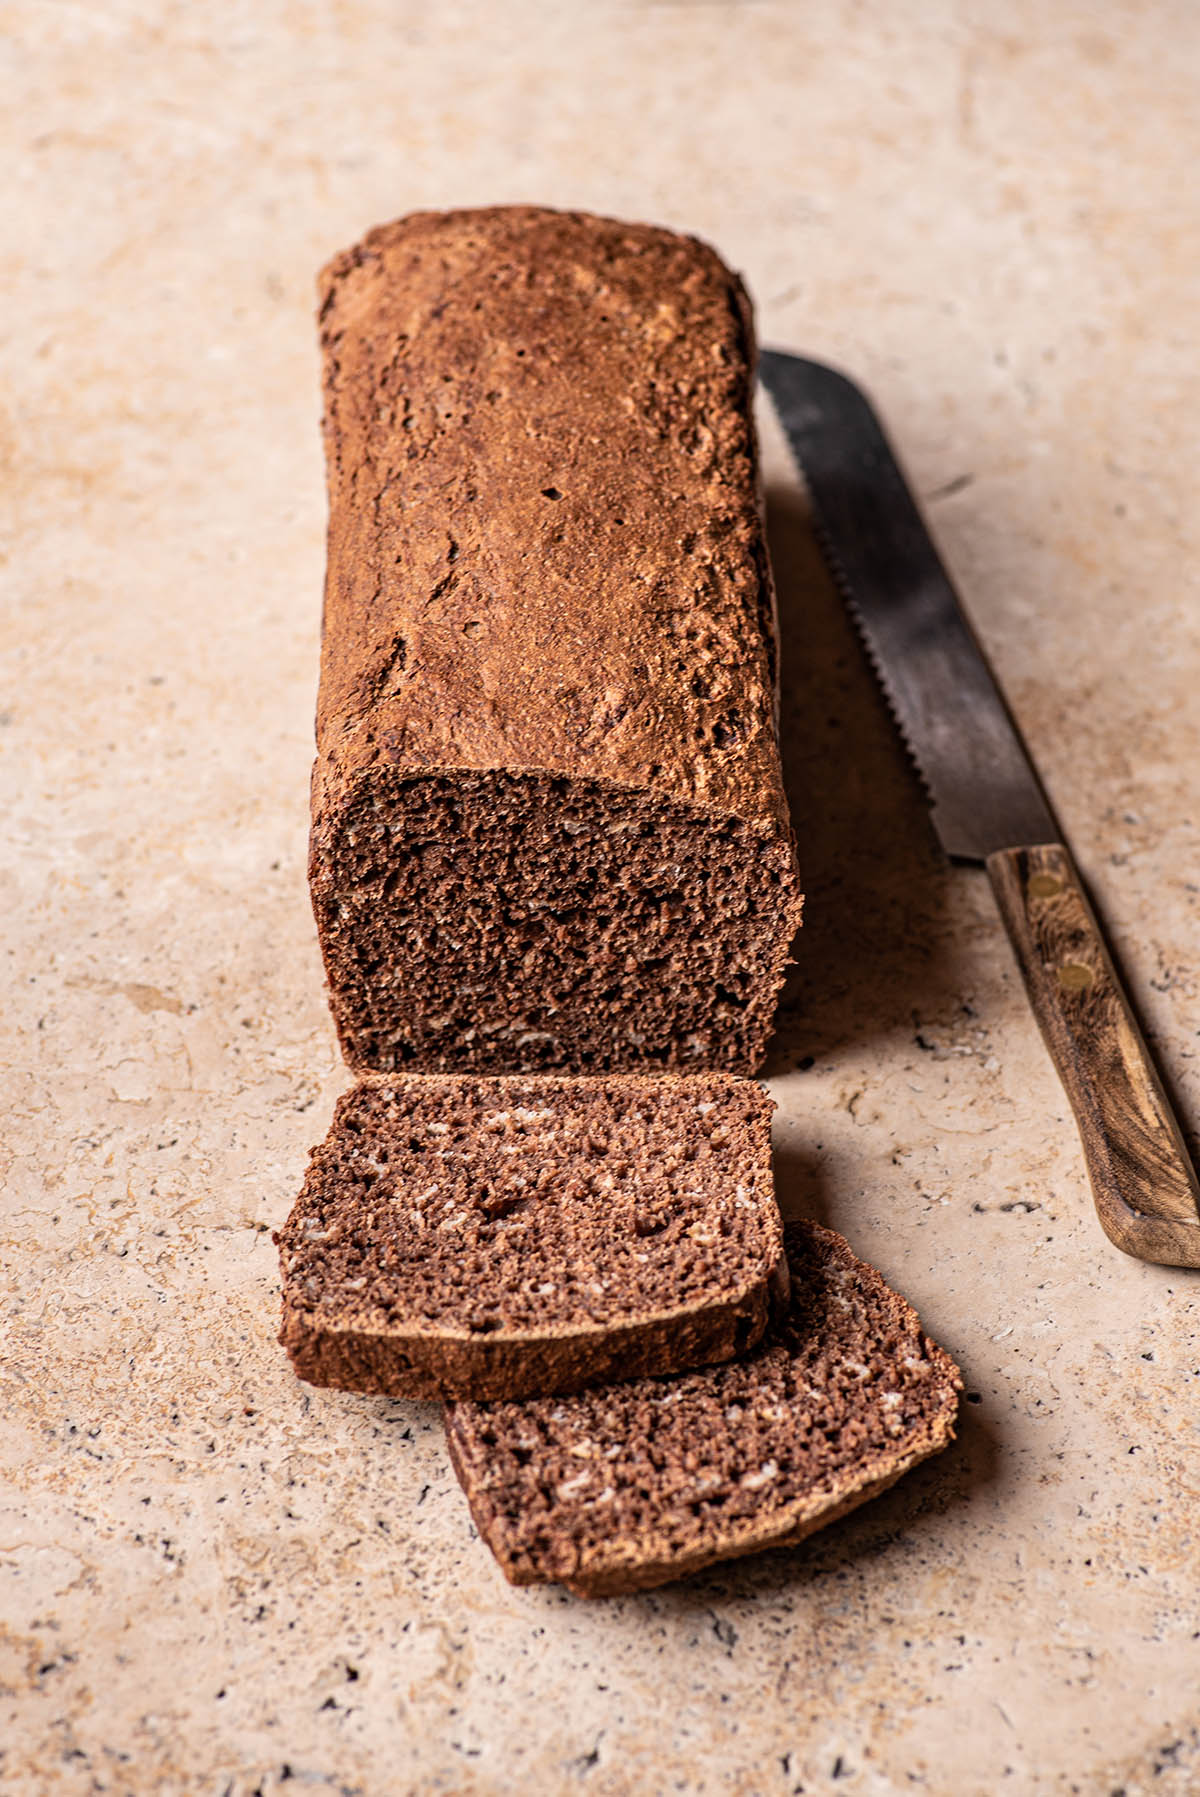 A loaf of dark rye bread with two slices cut.